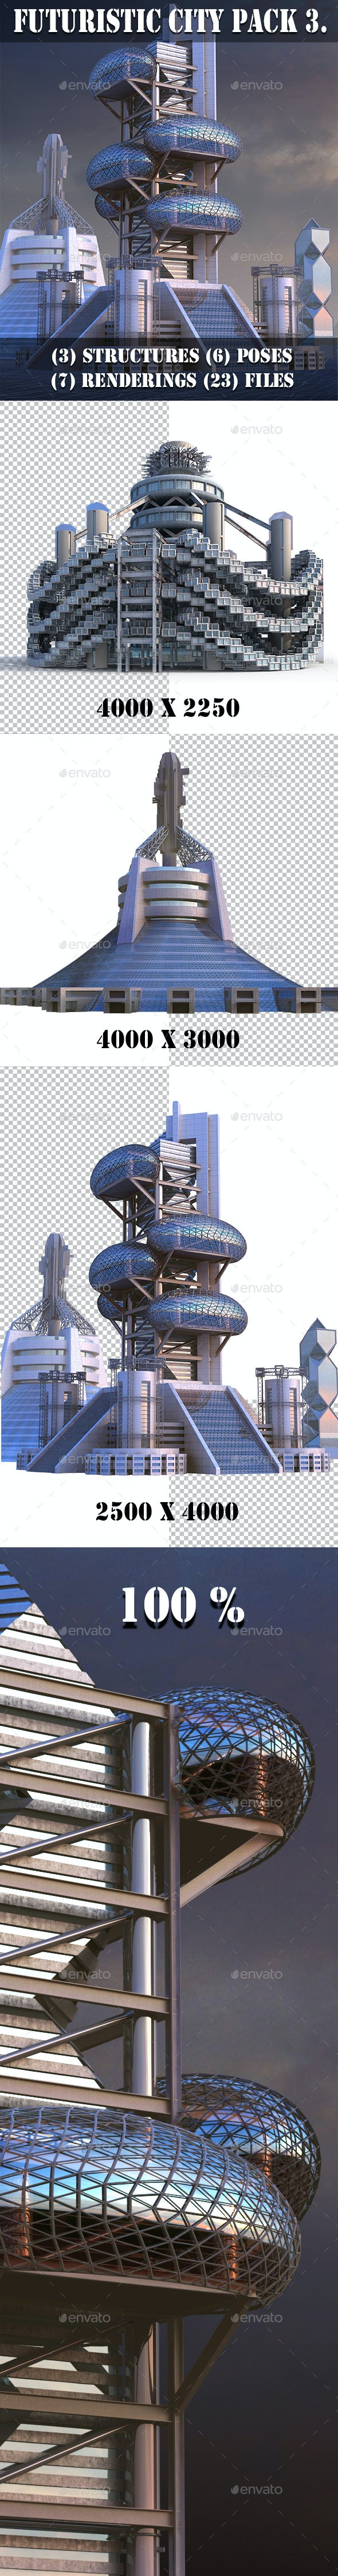 Futuristic City Pack 3 - Architecture 3D Renders